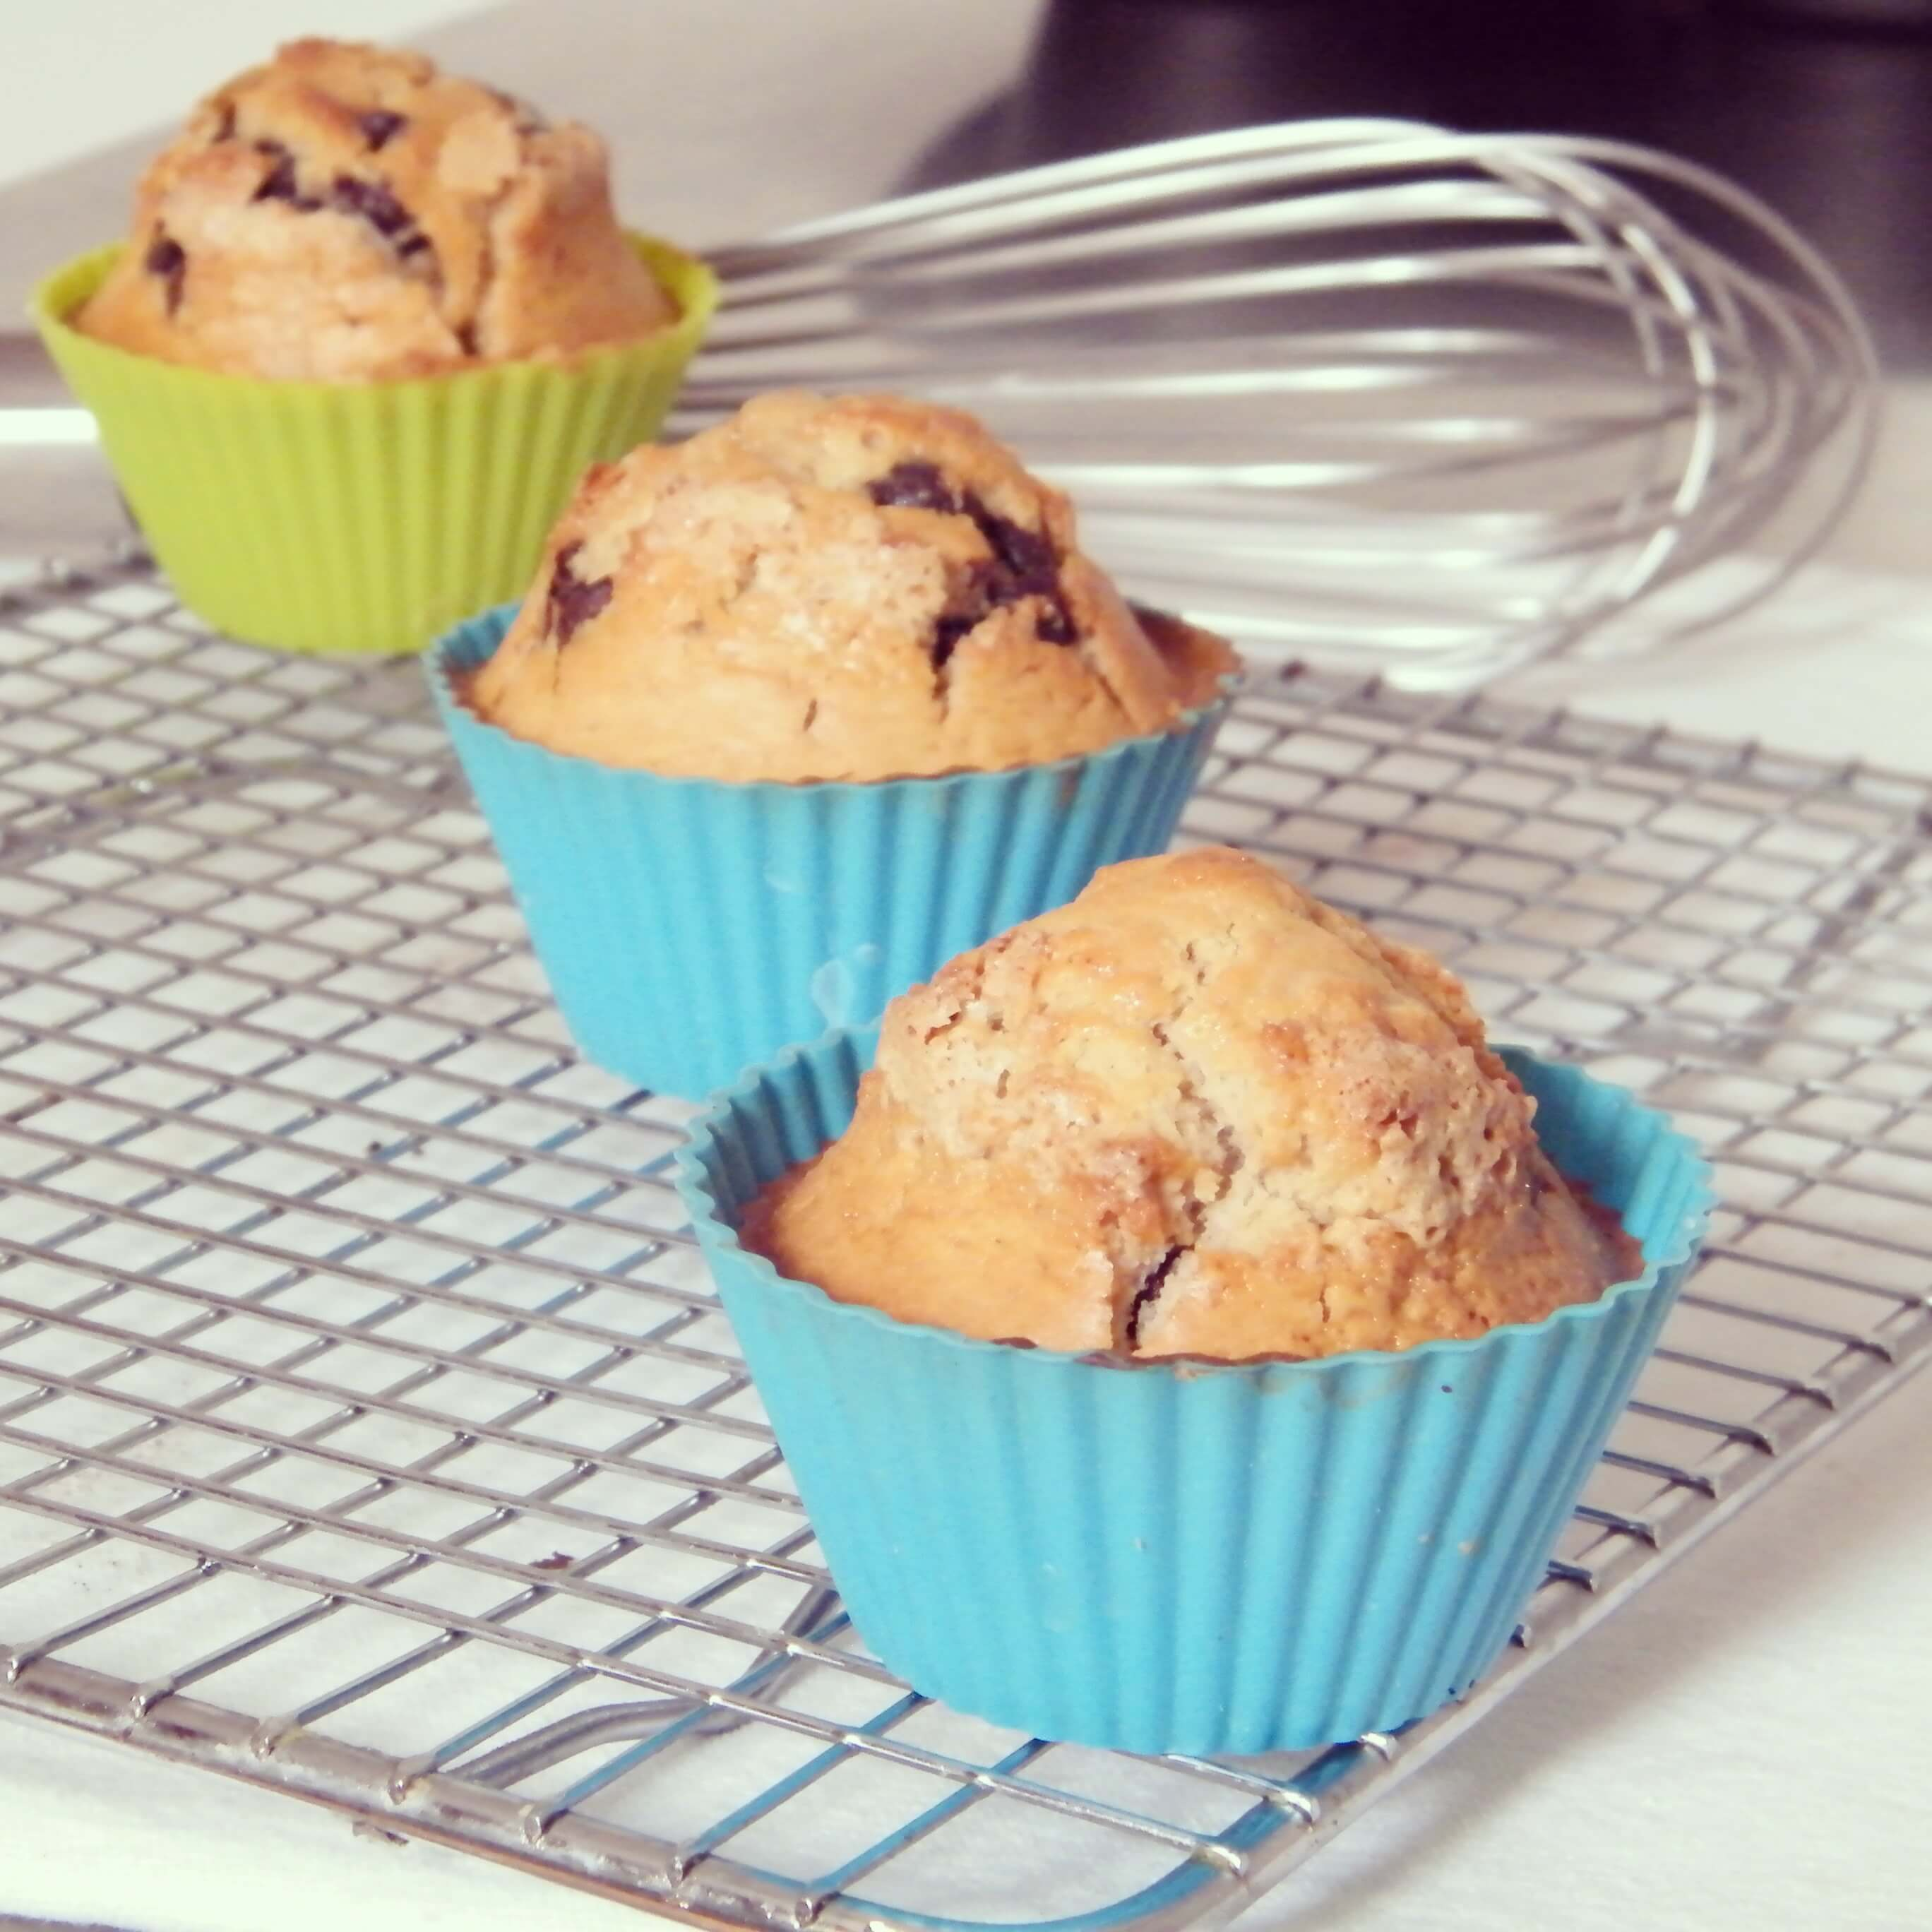 Muffin con chips de chocolate